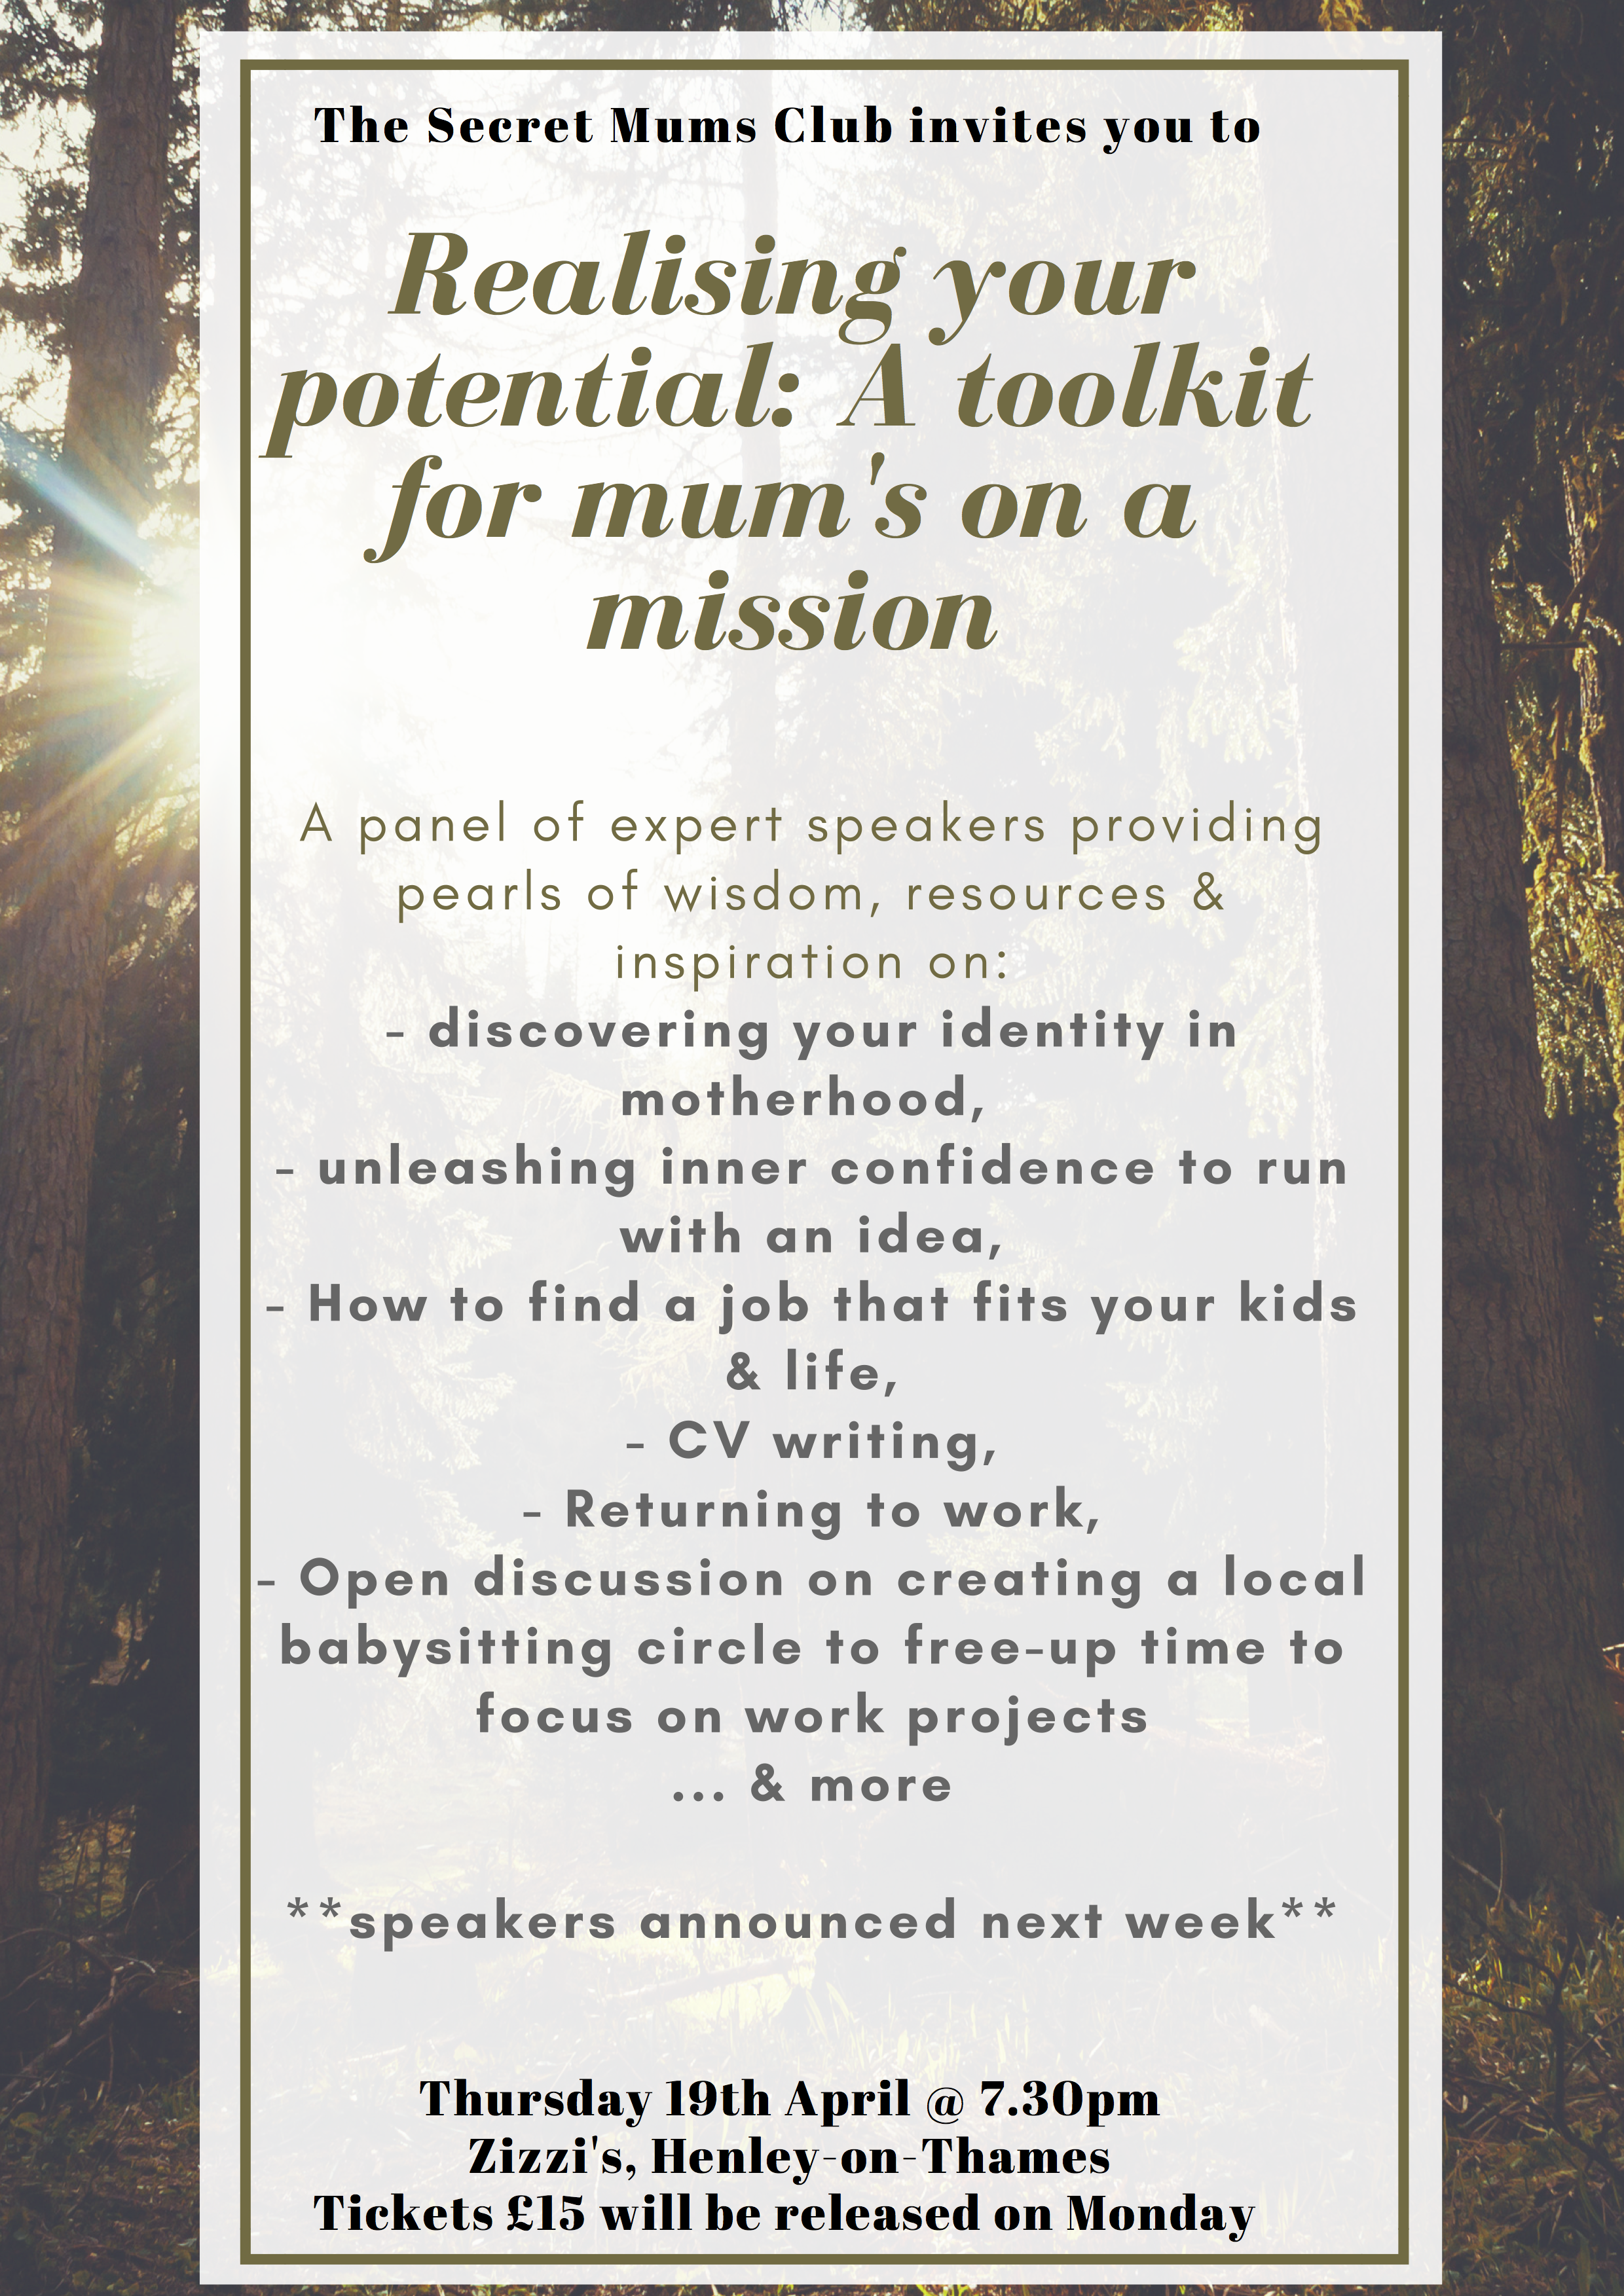 Realising your true potential: a toolkit for